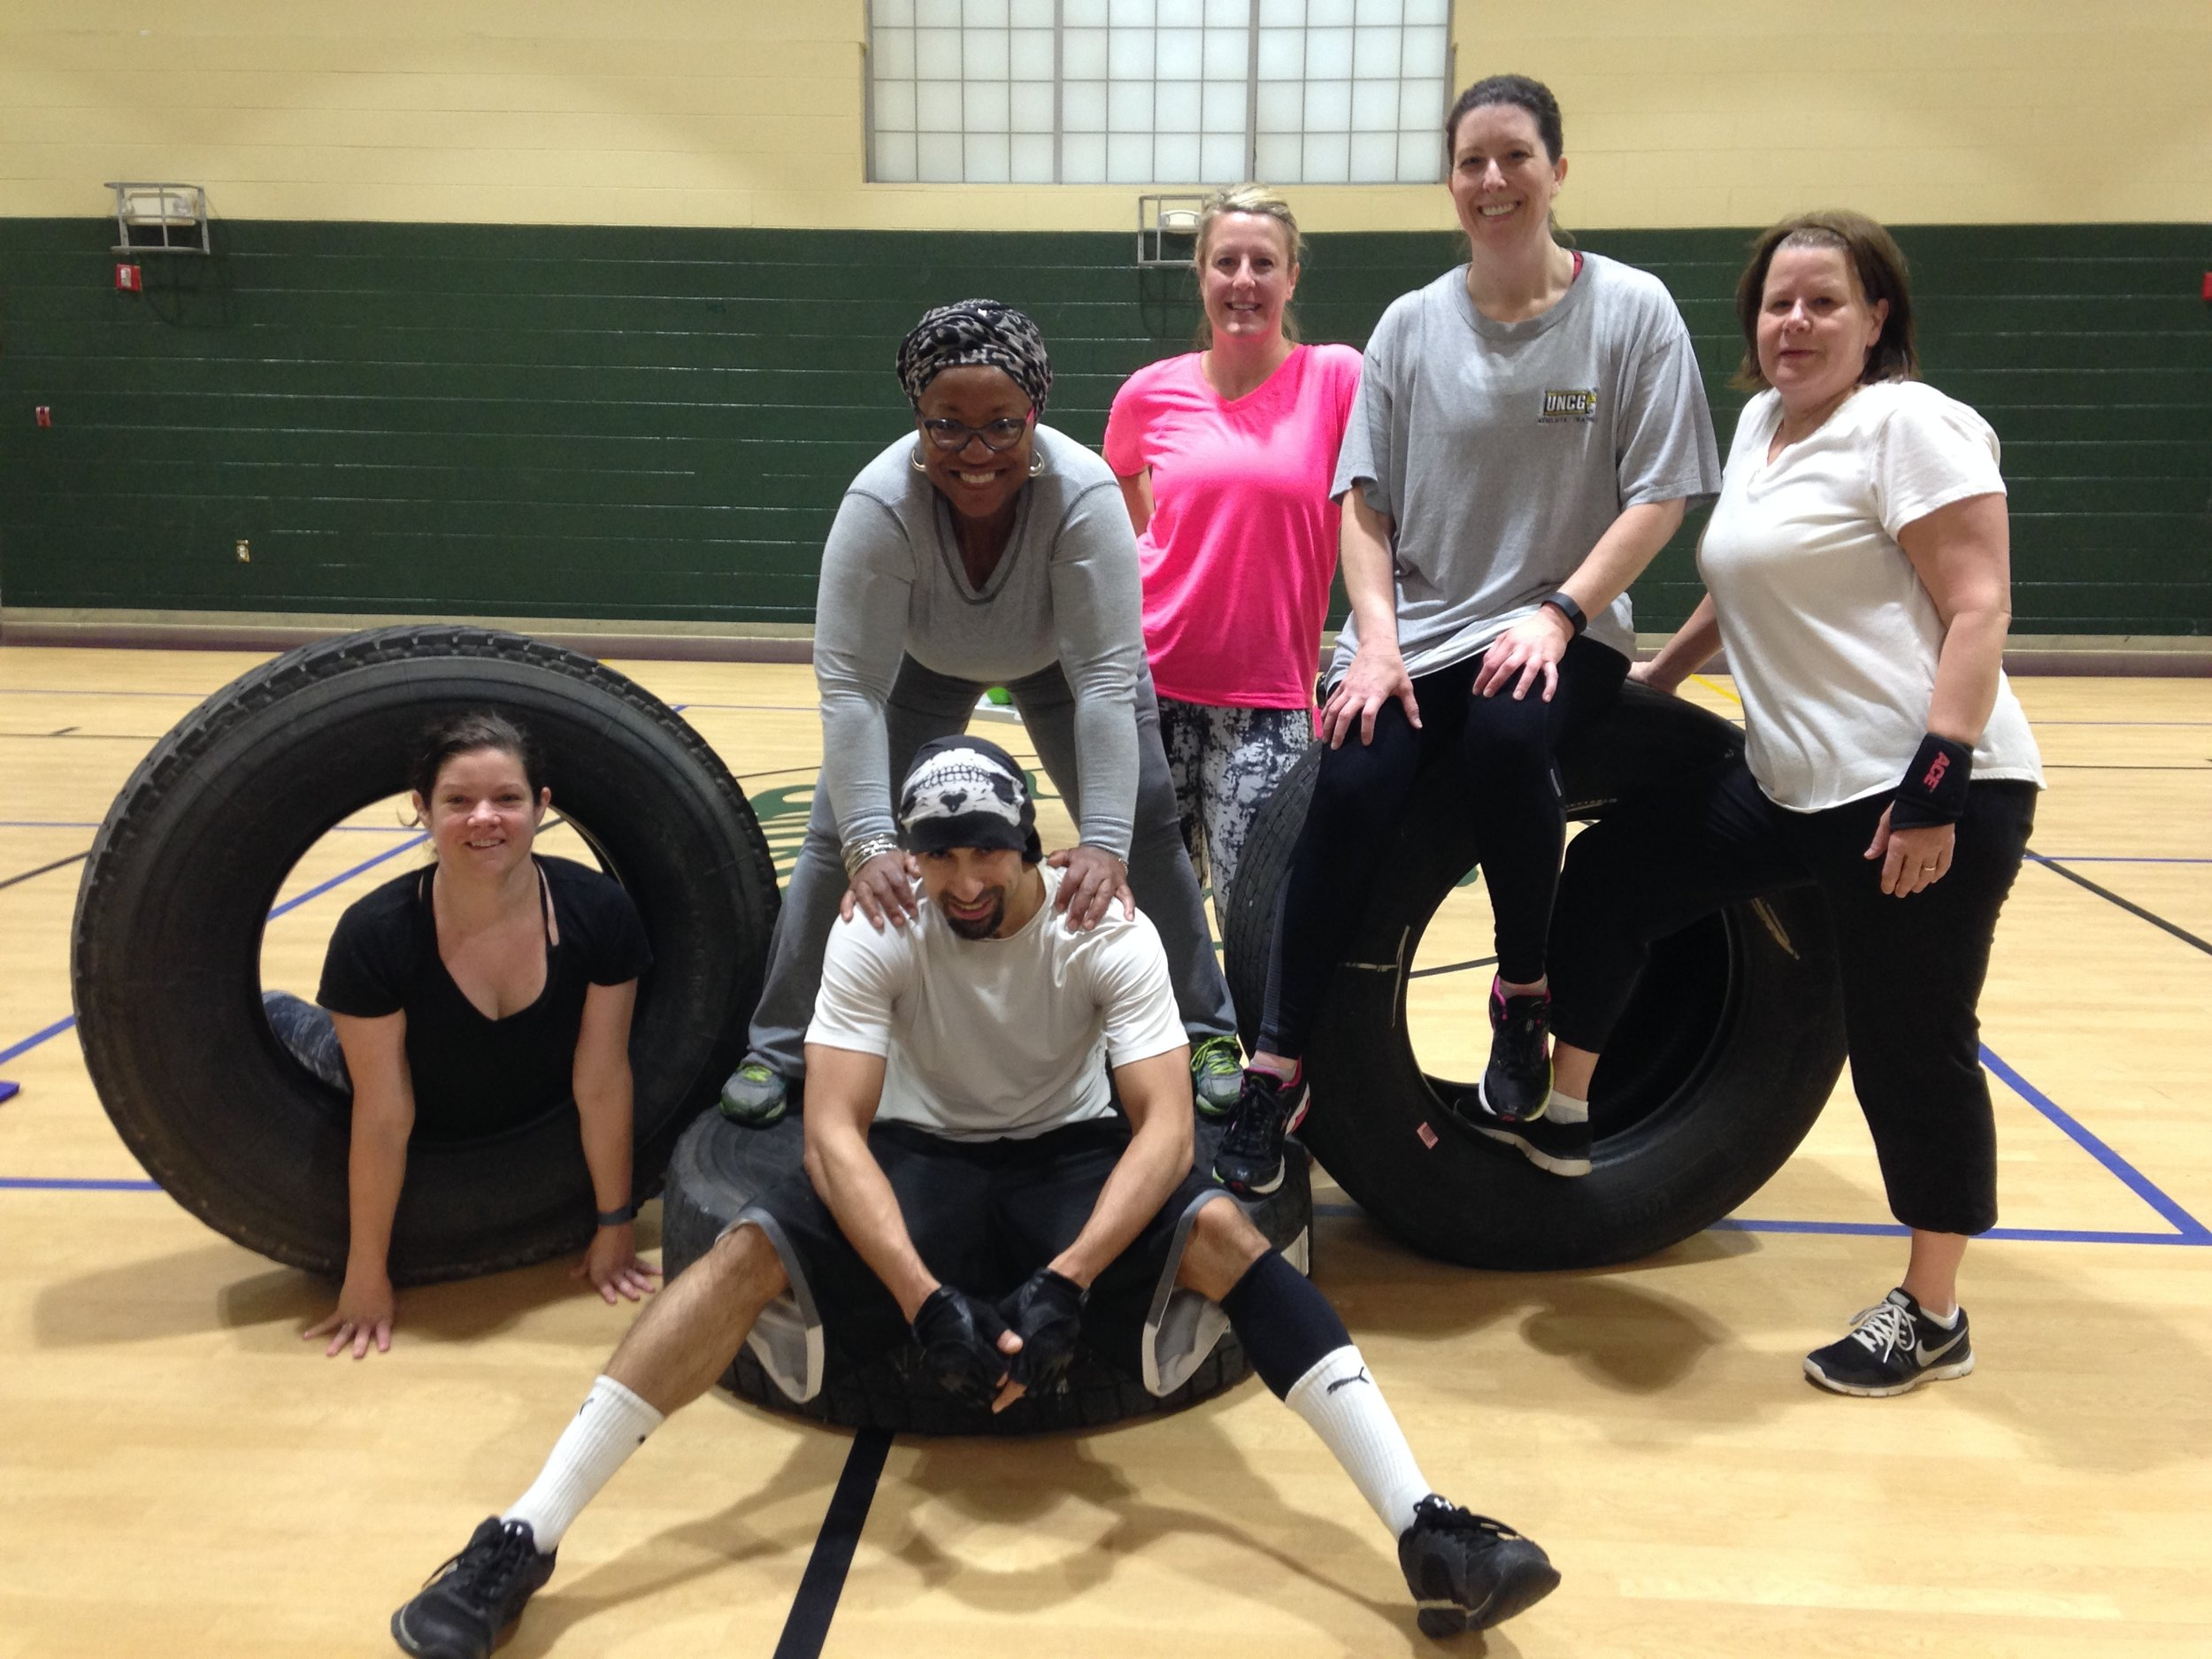 Bootcamp Starts March 11Mondays, Wednesdays, Fridays 6:30-7:15am - Folk Fitness will soon offer a High Intensity Early Morning Bootcamp. Shake up your mornings and start with a bang! Contact us below to learn more about this class!